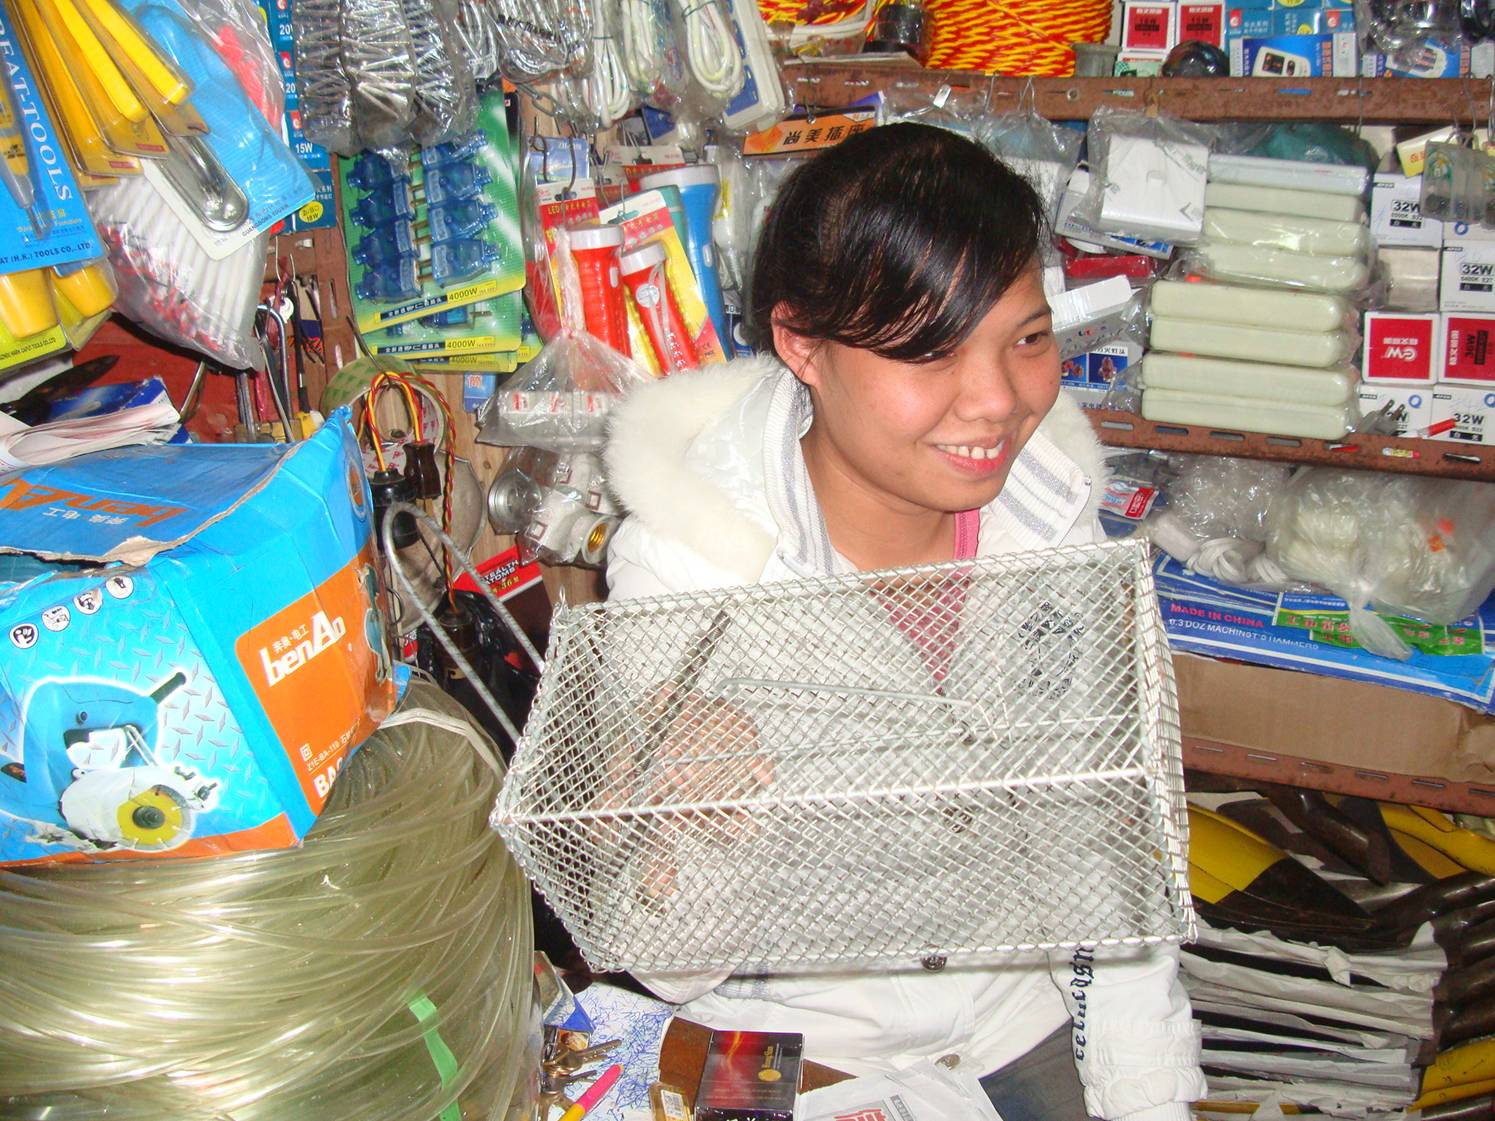 Picture:  The shop assistant holds a very effective live animal trap.  Haikou on Hainan Island, China